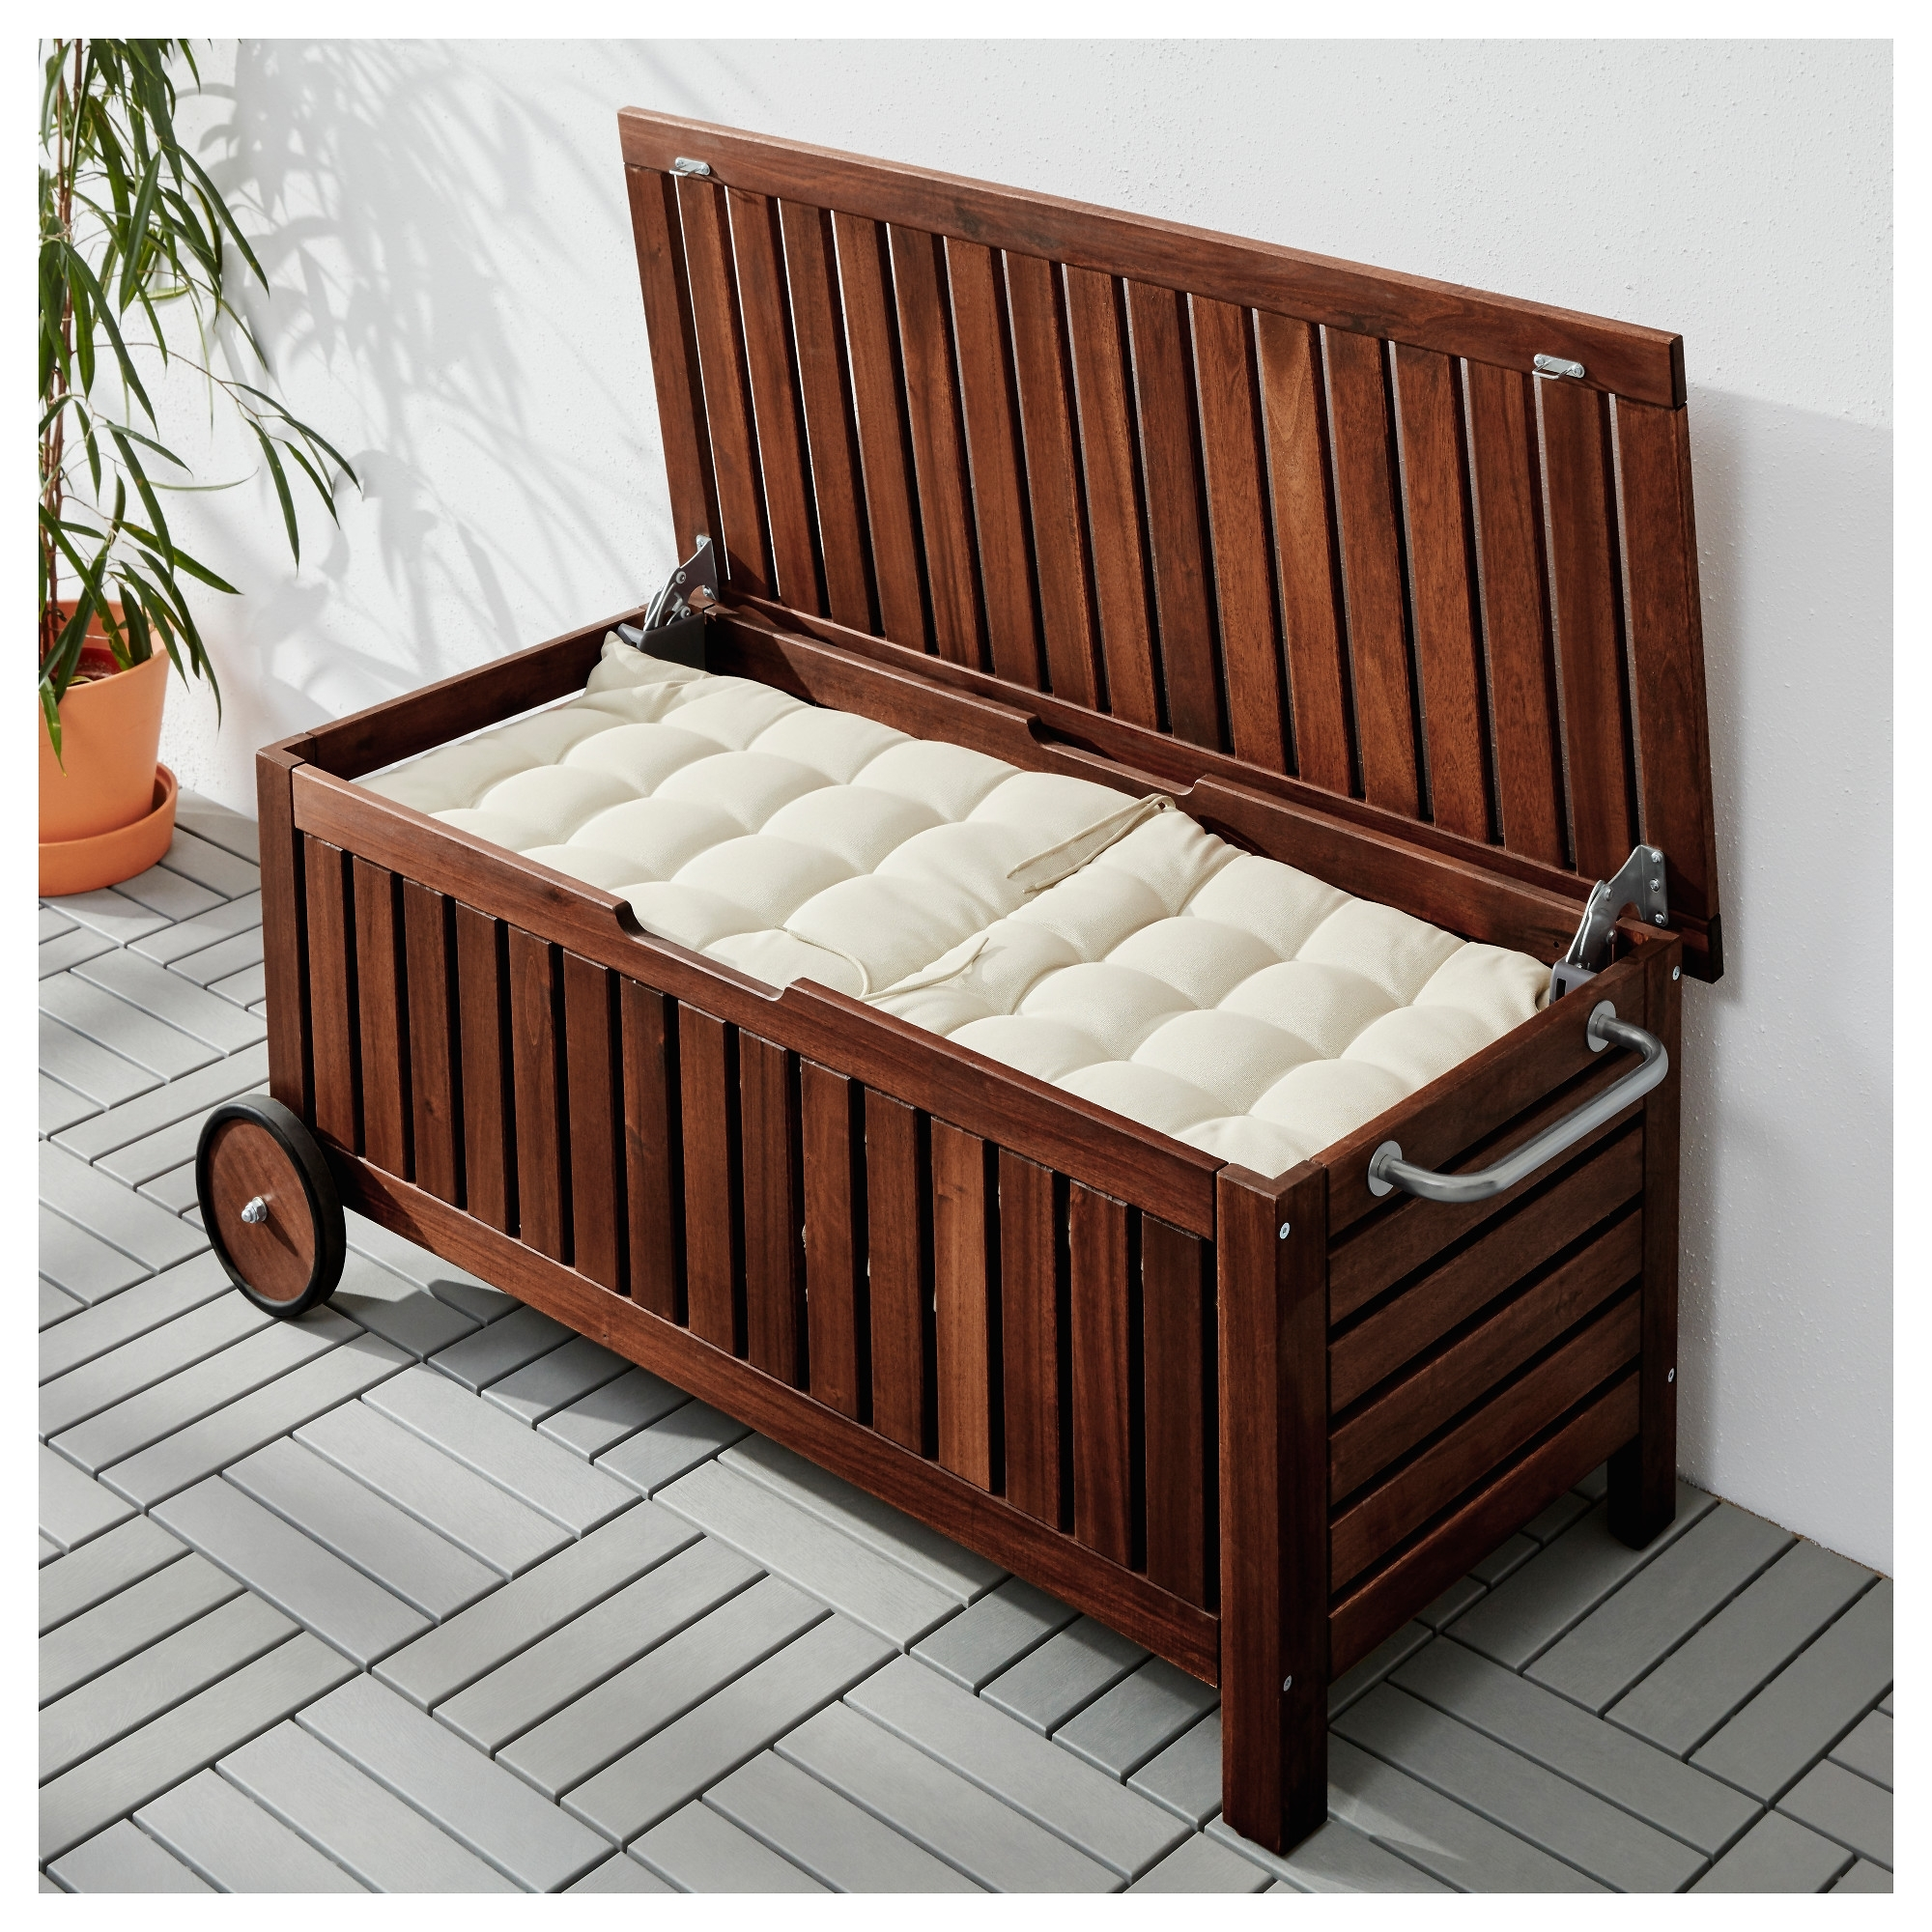 Image of: Pplar Storage Bench Outdoor Ikea Intended For Outdoor Cushion Storage Bench Classic Outdoor Cushion Storage Bench